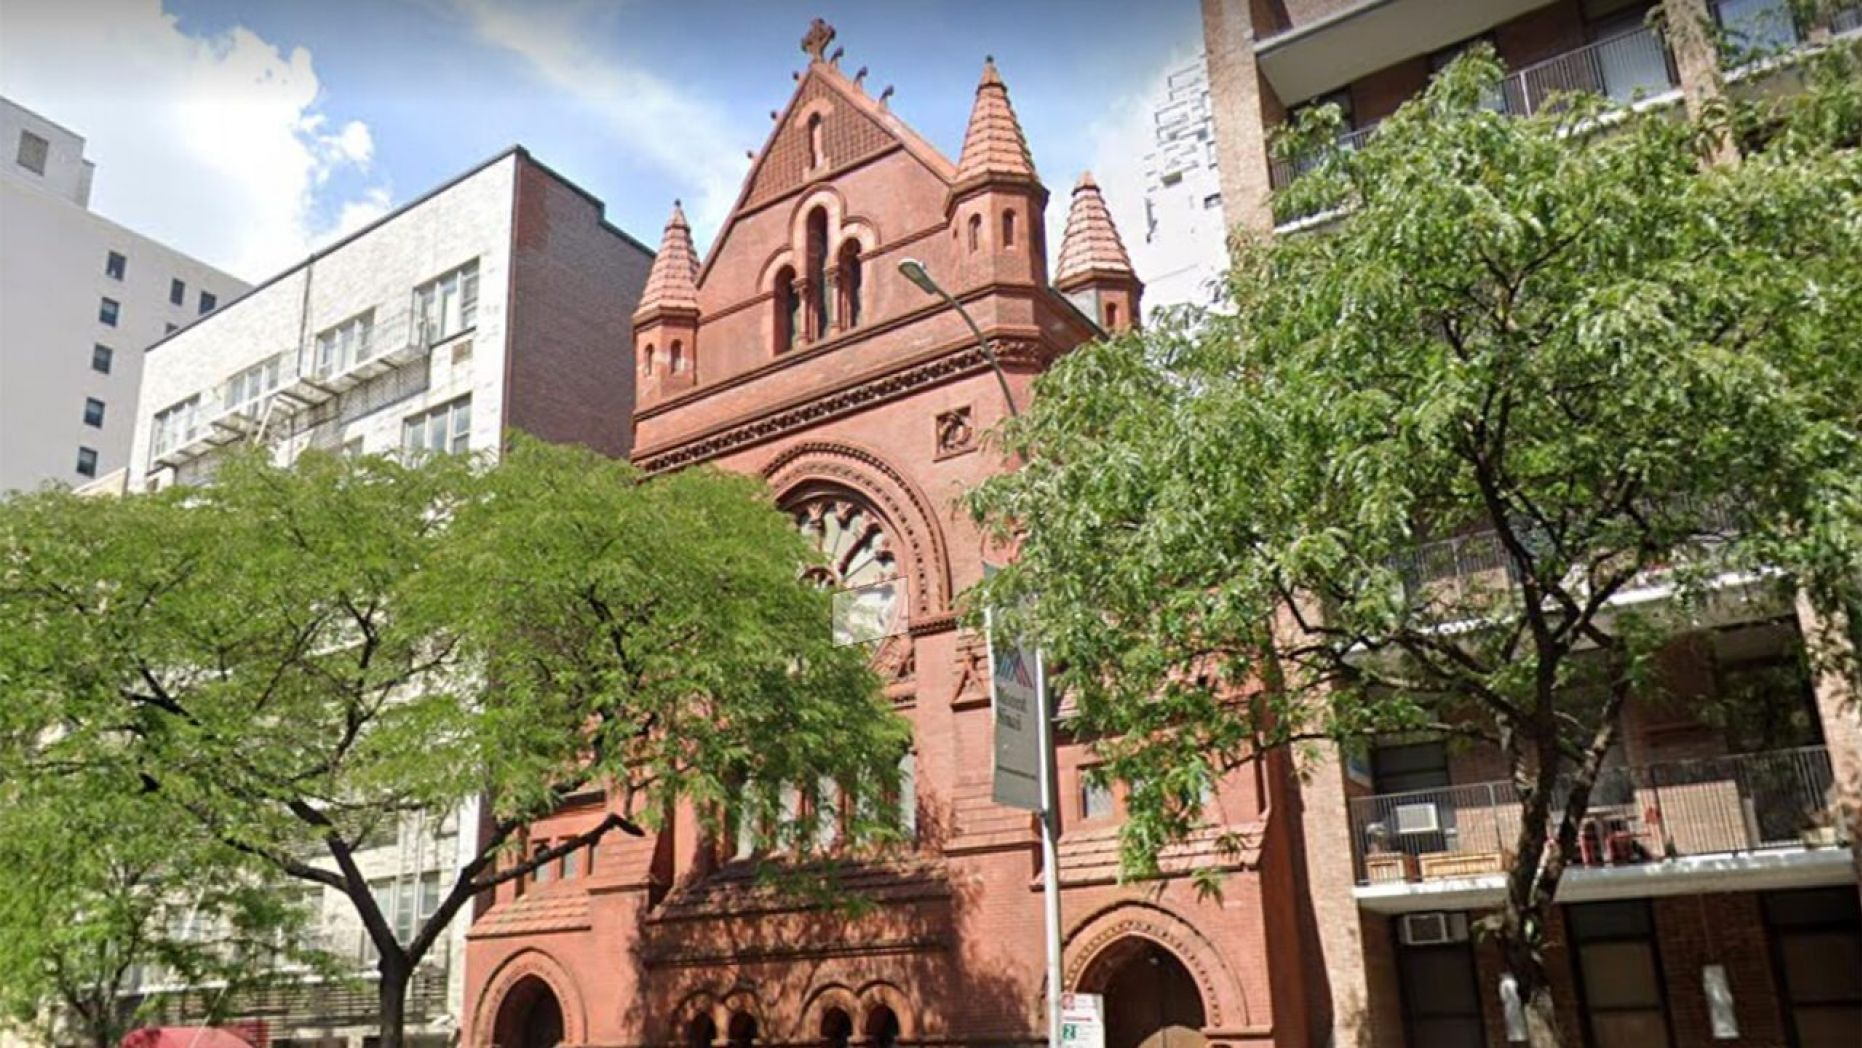 NYC church barricades front door after homeless try breaking in, defecating on steps